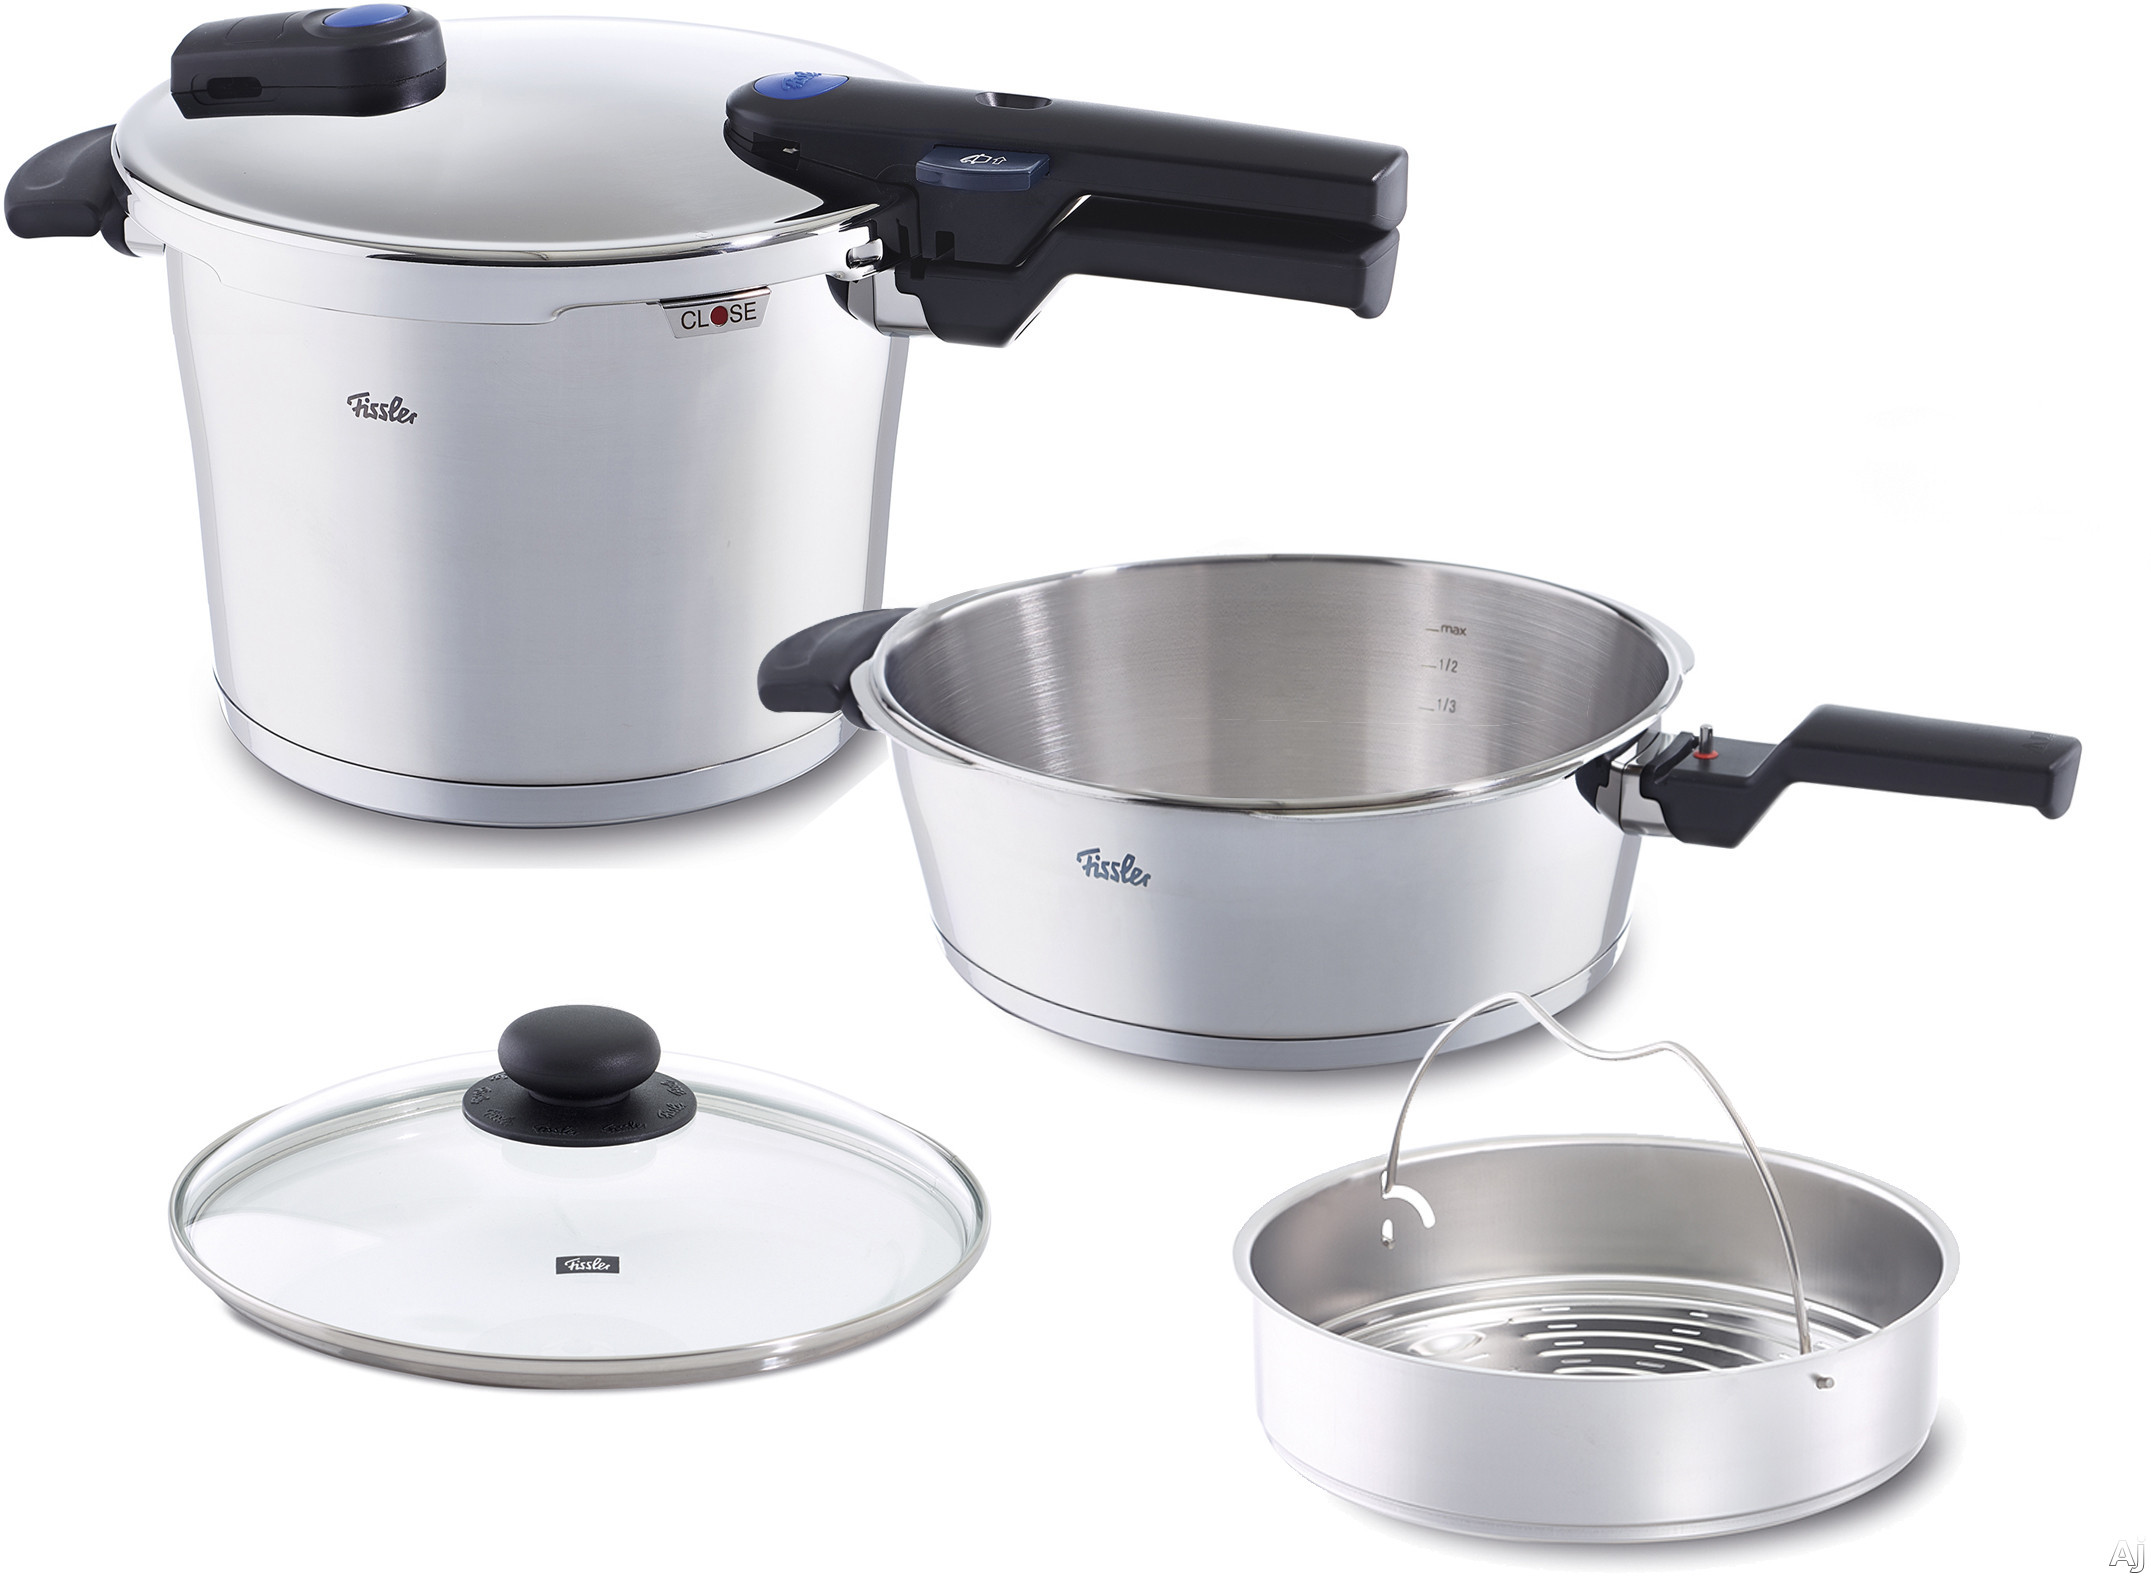 "Fissler 60070011099 Vitaquick Large Pressure Cooker Set with Cookstarâ""¢ Stove Base, Novogrillâ""¢ Skillet, Cooking Indicator, Auto Steam Release, Rivet Free Interior, Safety Lock, Integrated M"